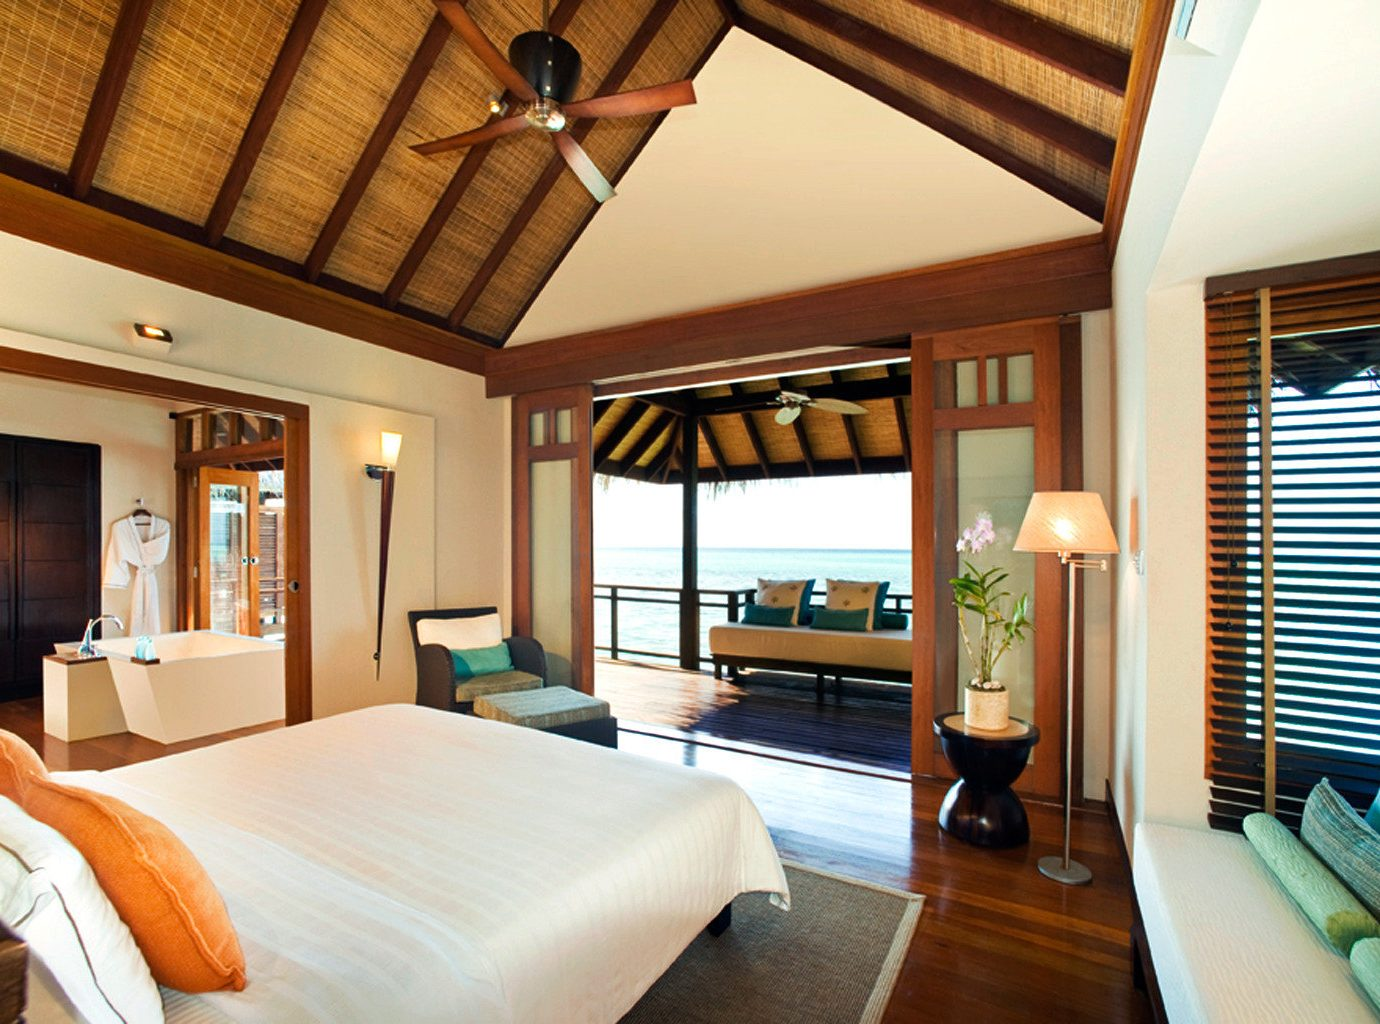 Balcony Bedroom Elegant Luxury Modern Scenic views Suite sofa property Resort cottage home living room Villa flat